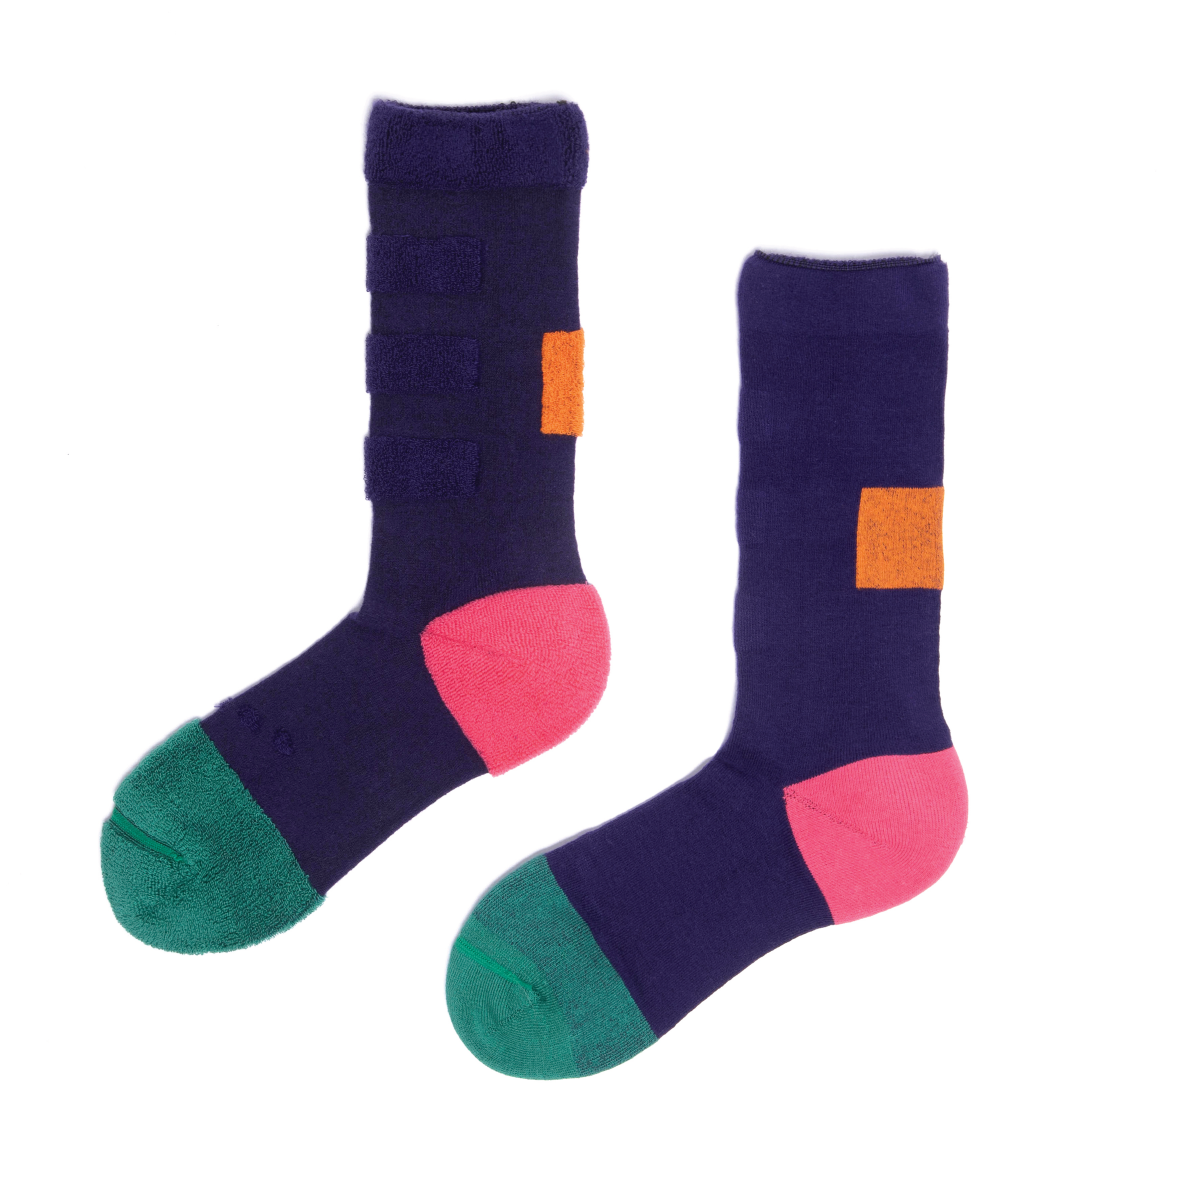 MY INNER BEAUTY: MINDA | Purple Pennant & Bistro Green | Reversible Patterned Socks